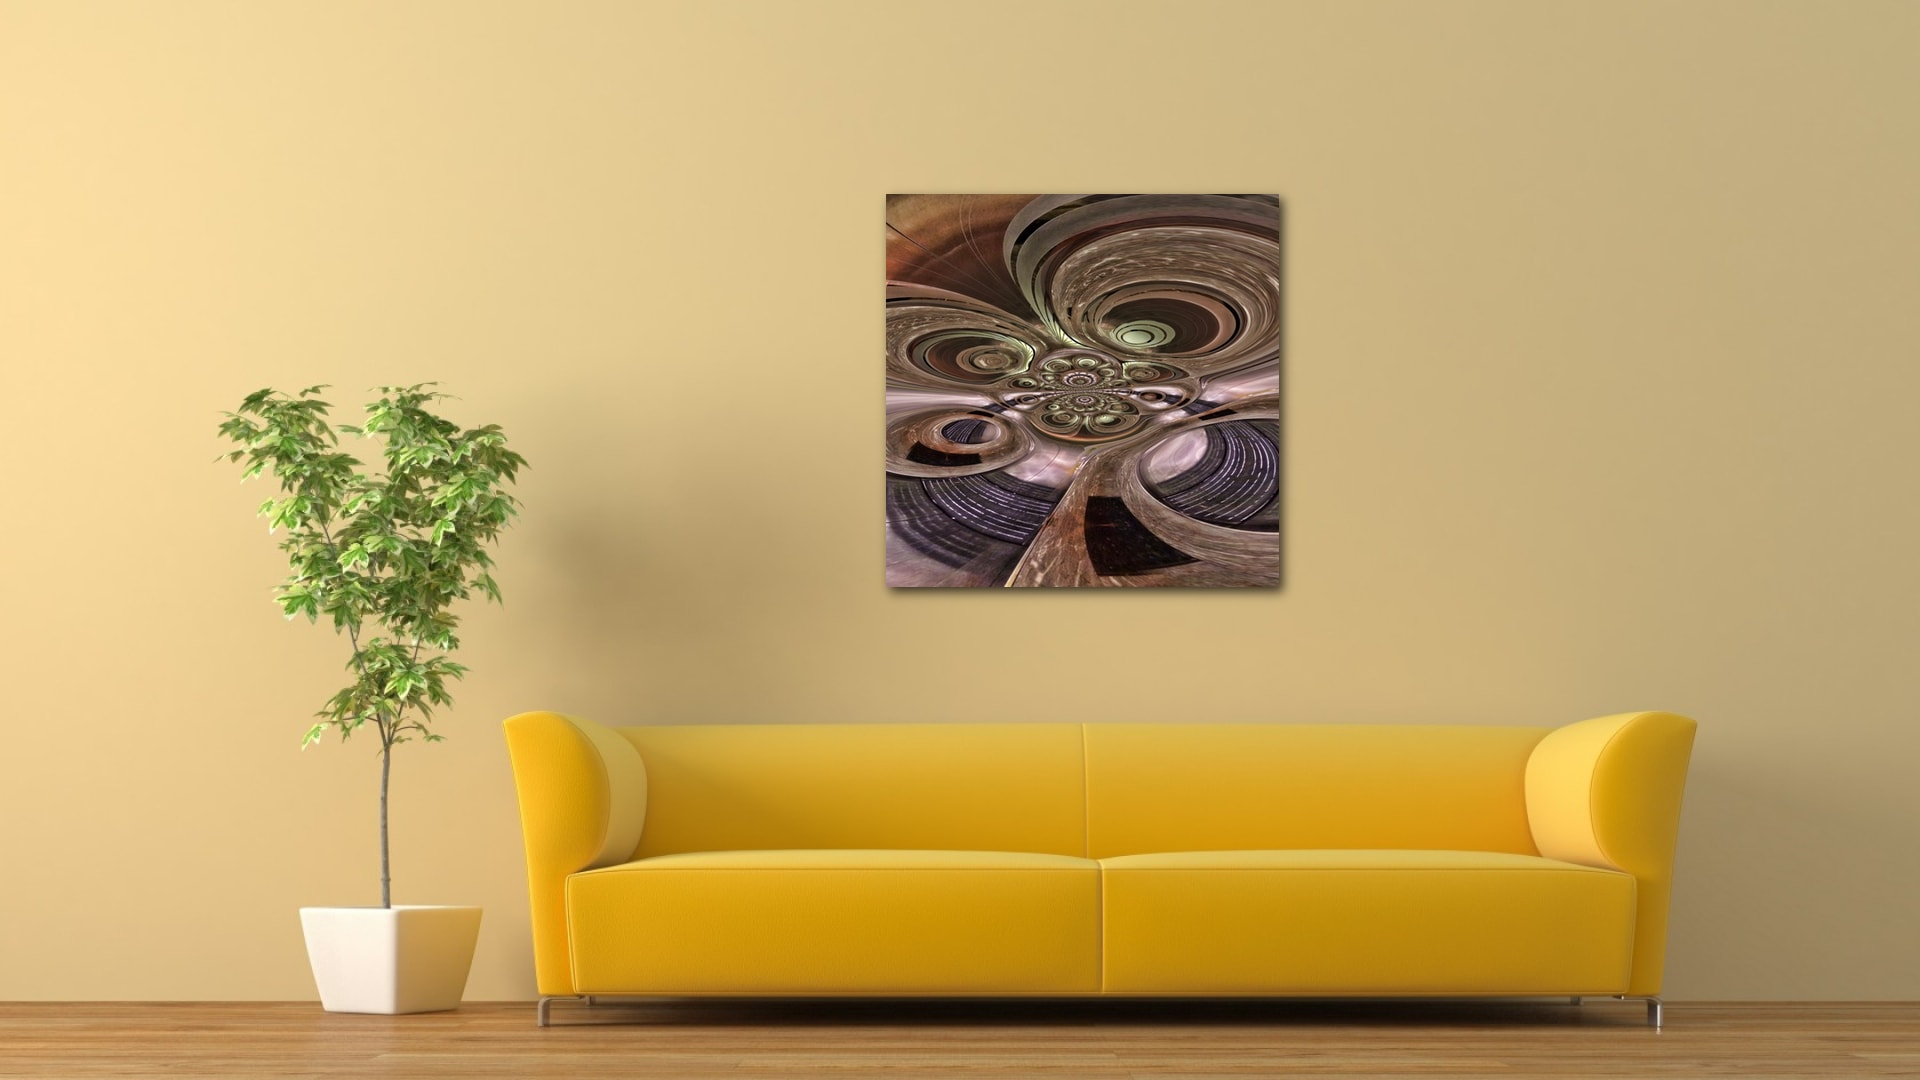 Elevated Levels abstract artwork available on alu-dibond and metallic fine art prints